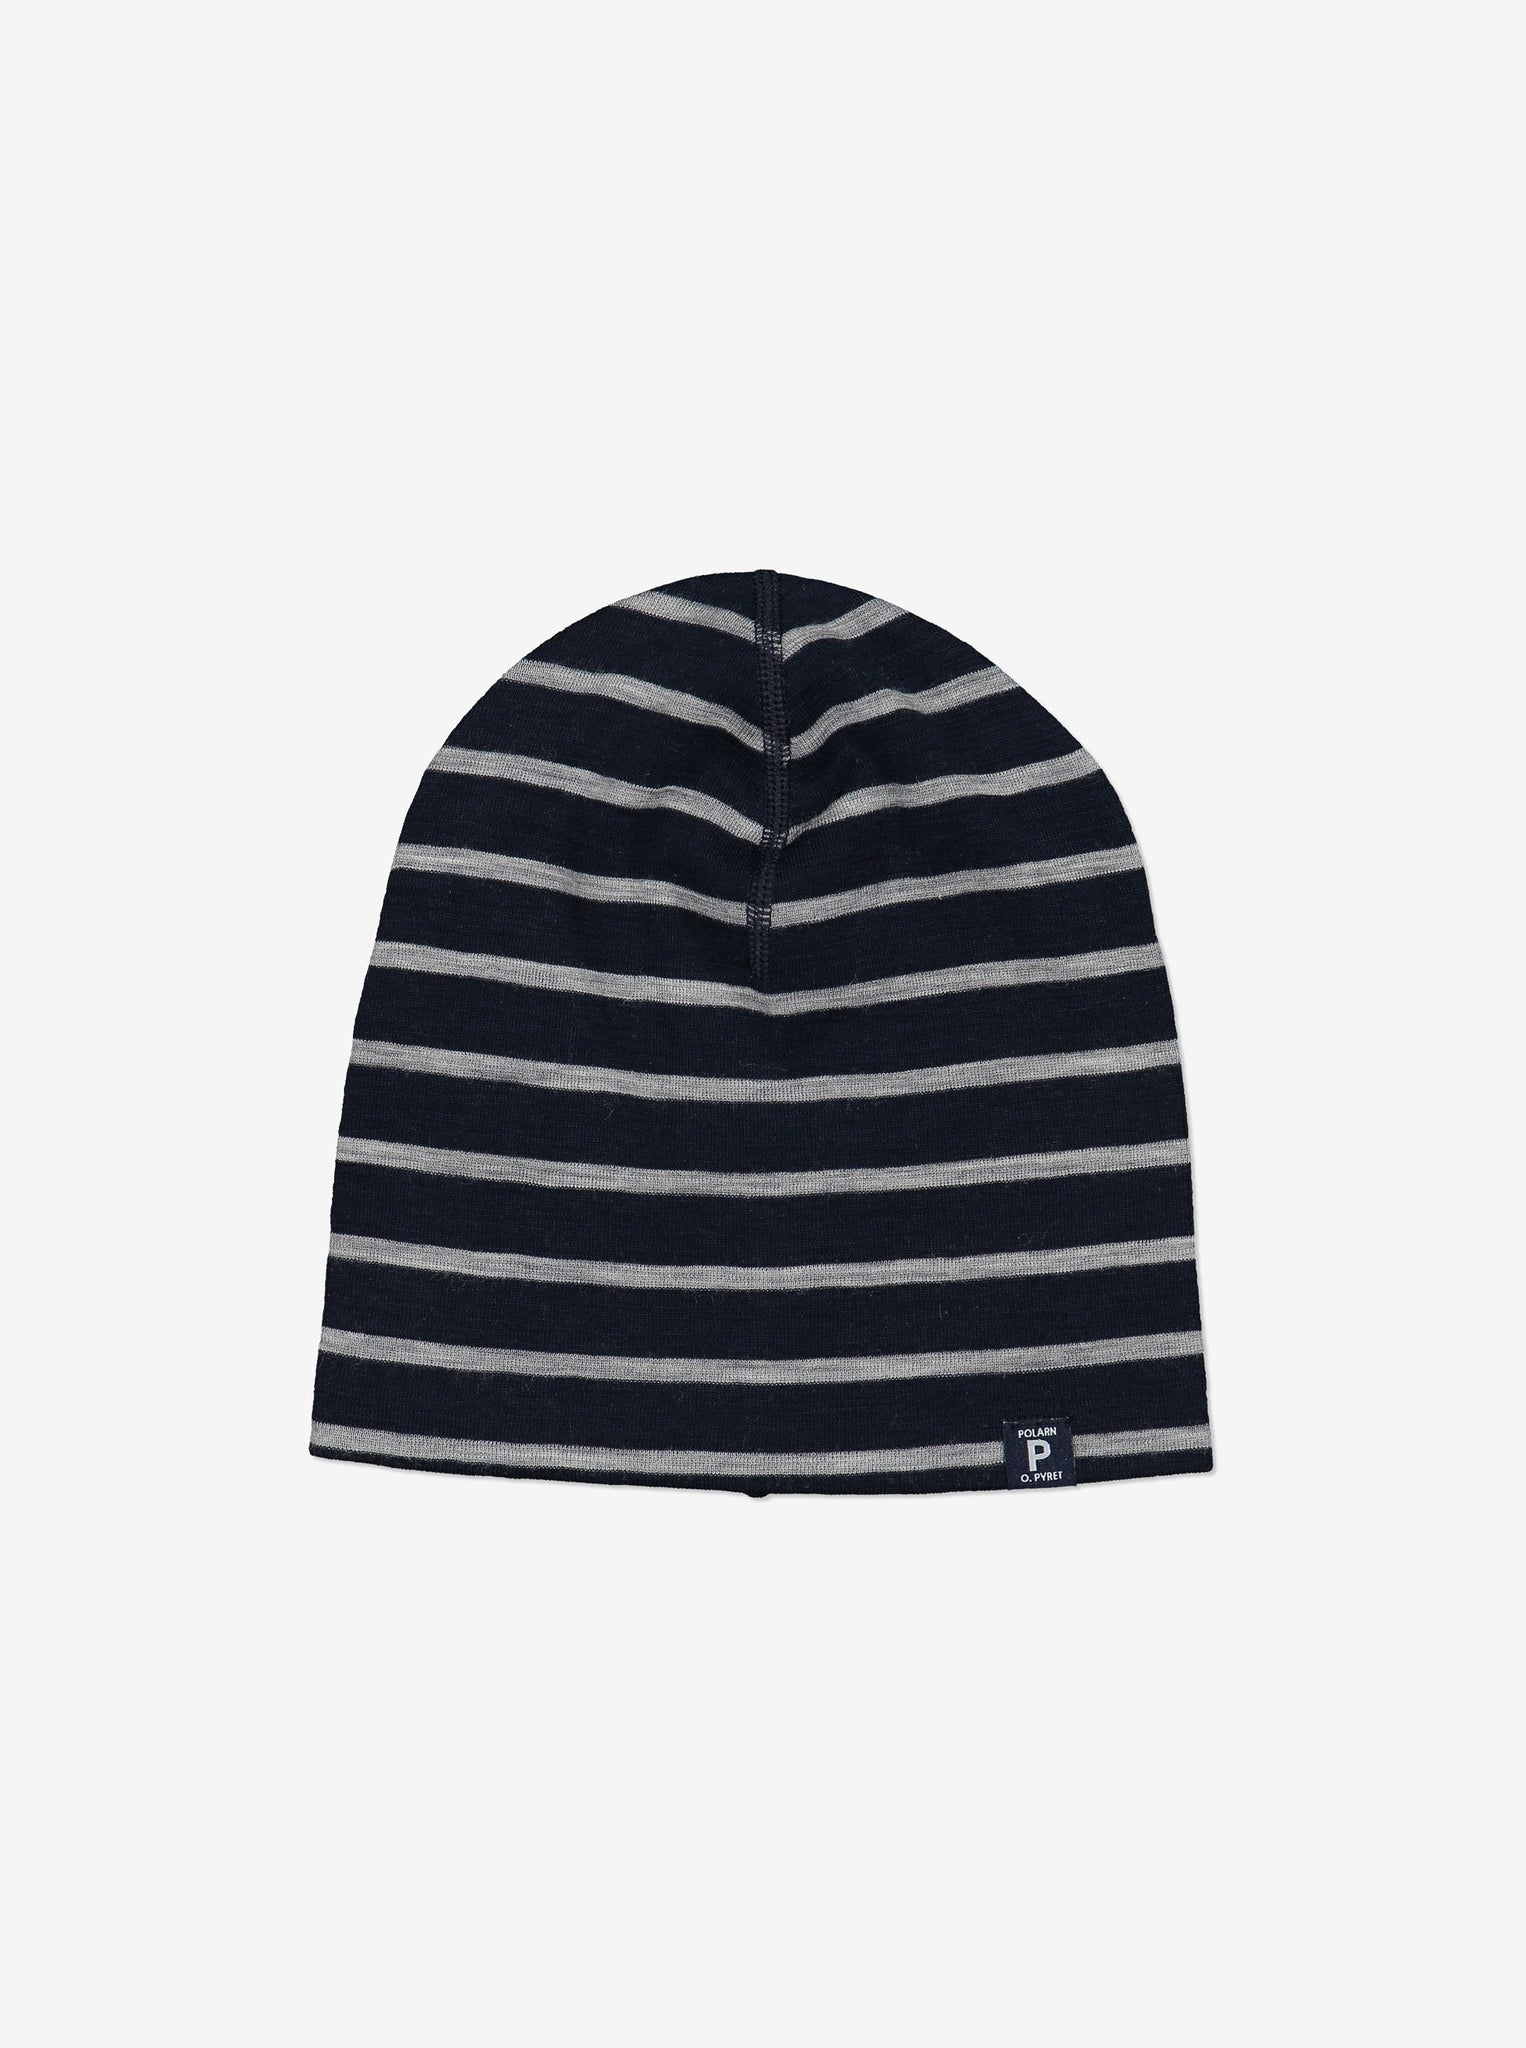 Merino Wool Kids Beanie Hat-4m-12y-Navy-Boy